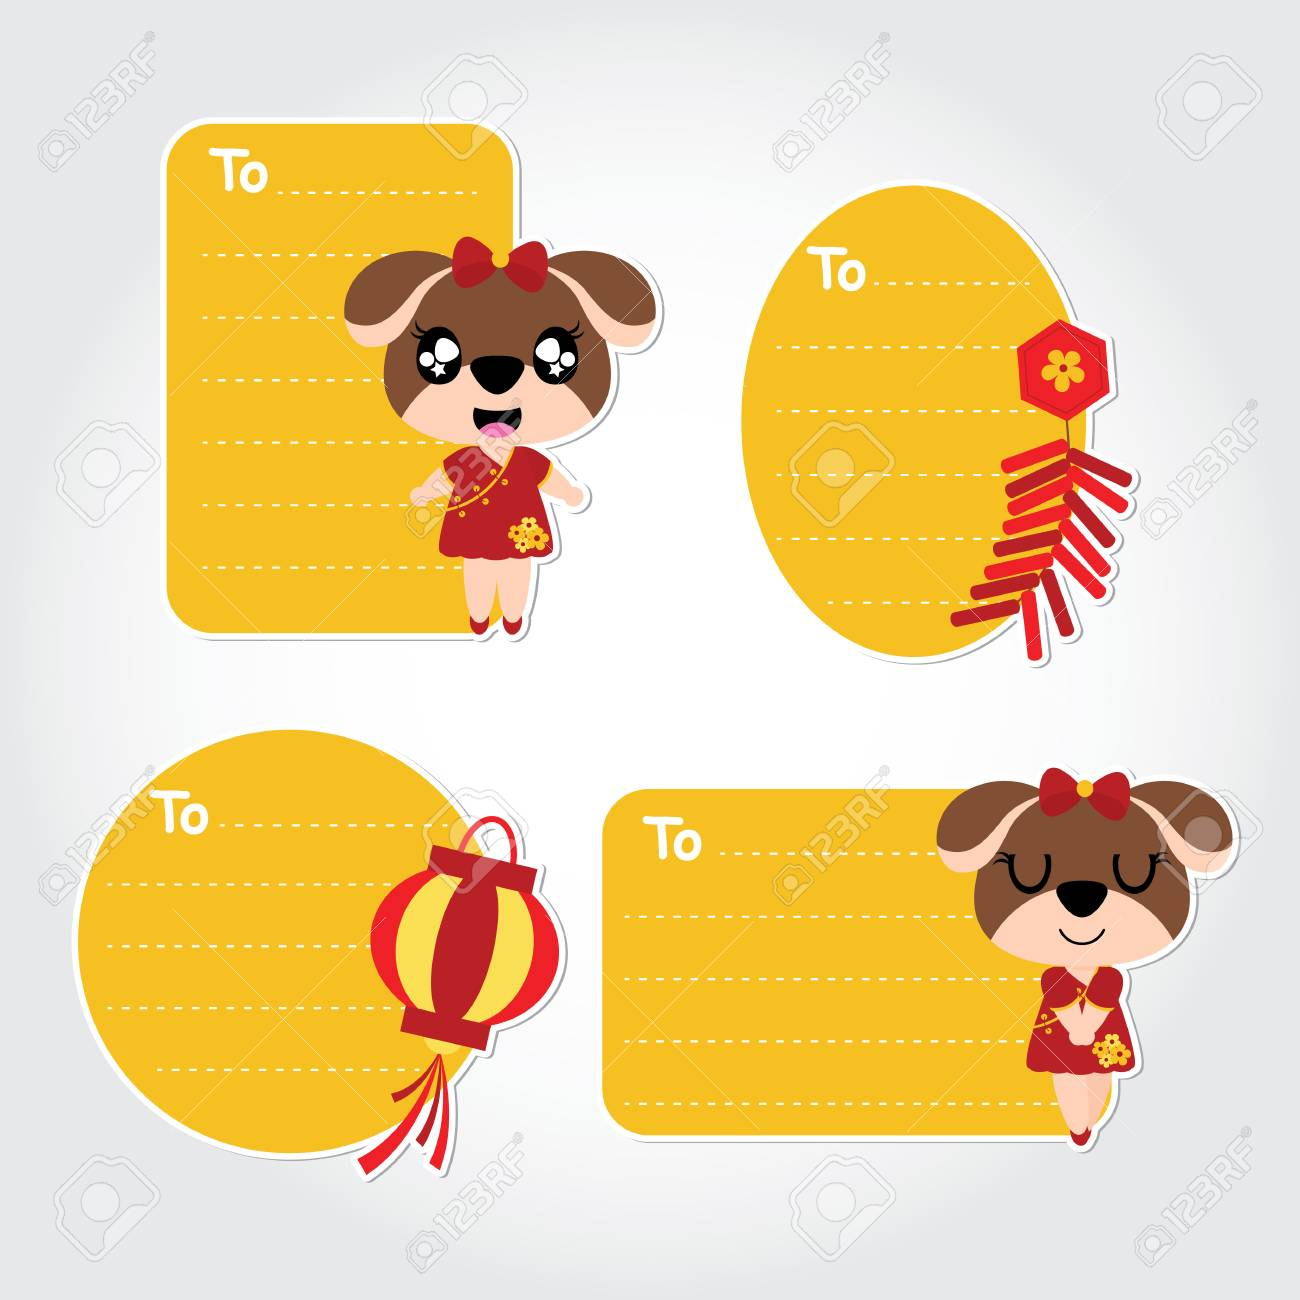 Cute Puppy Vector Cartoon Illustration For Chinese New Year Tag ...